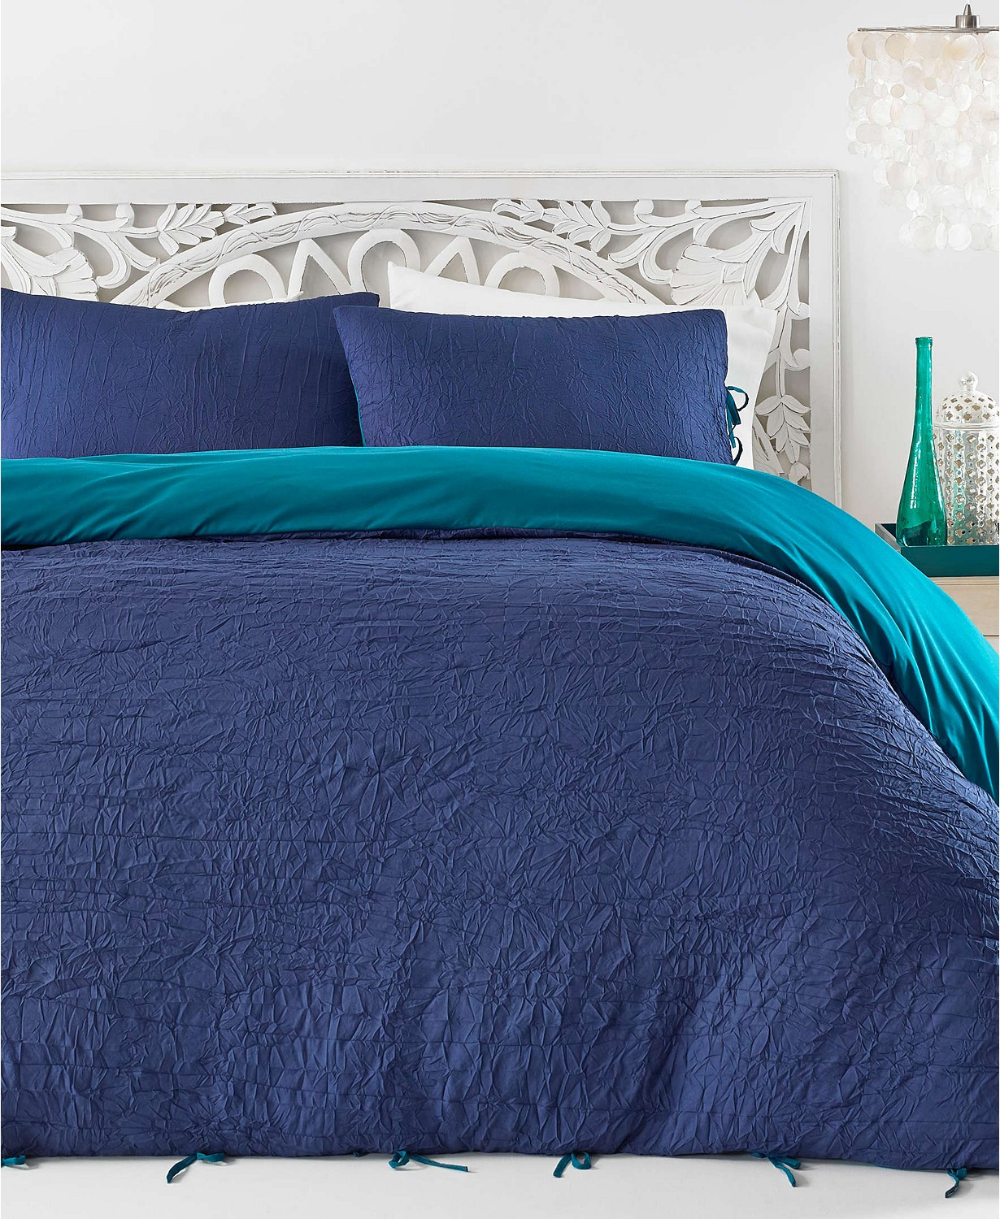 Azalea Skye Amara Bedding Collection & Reviews Bedding